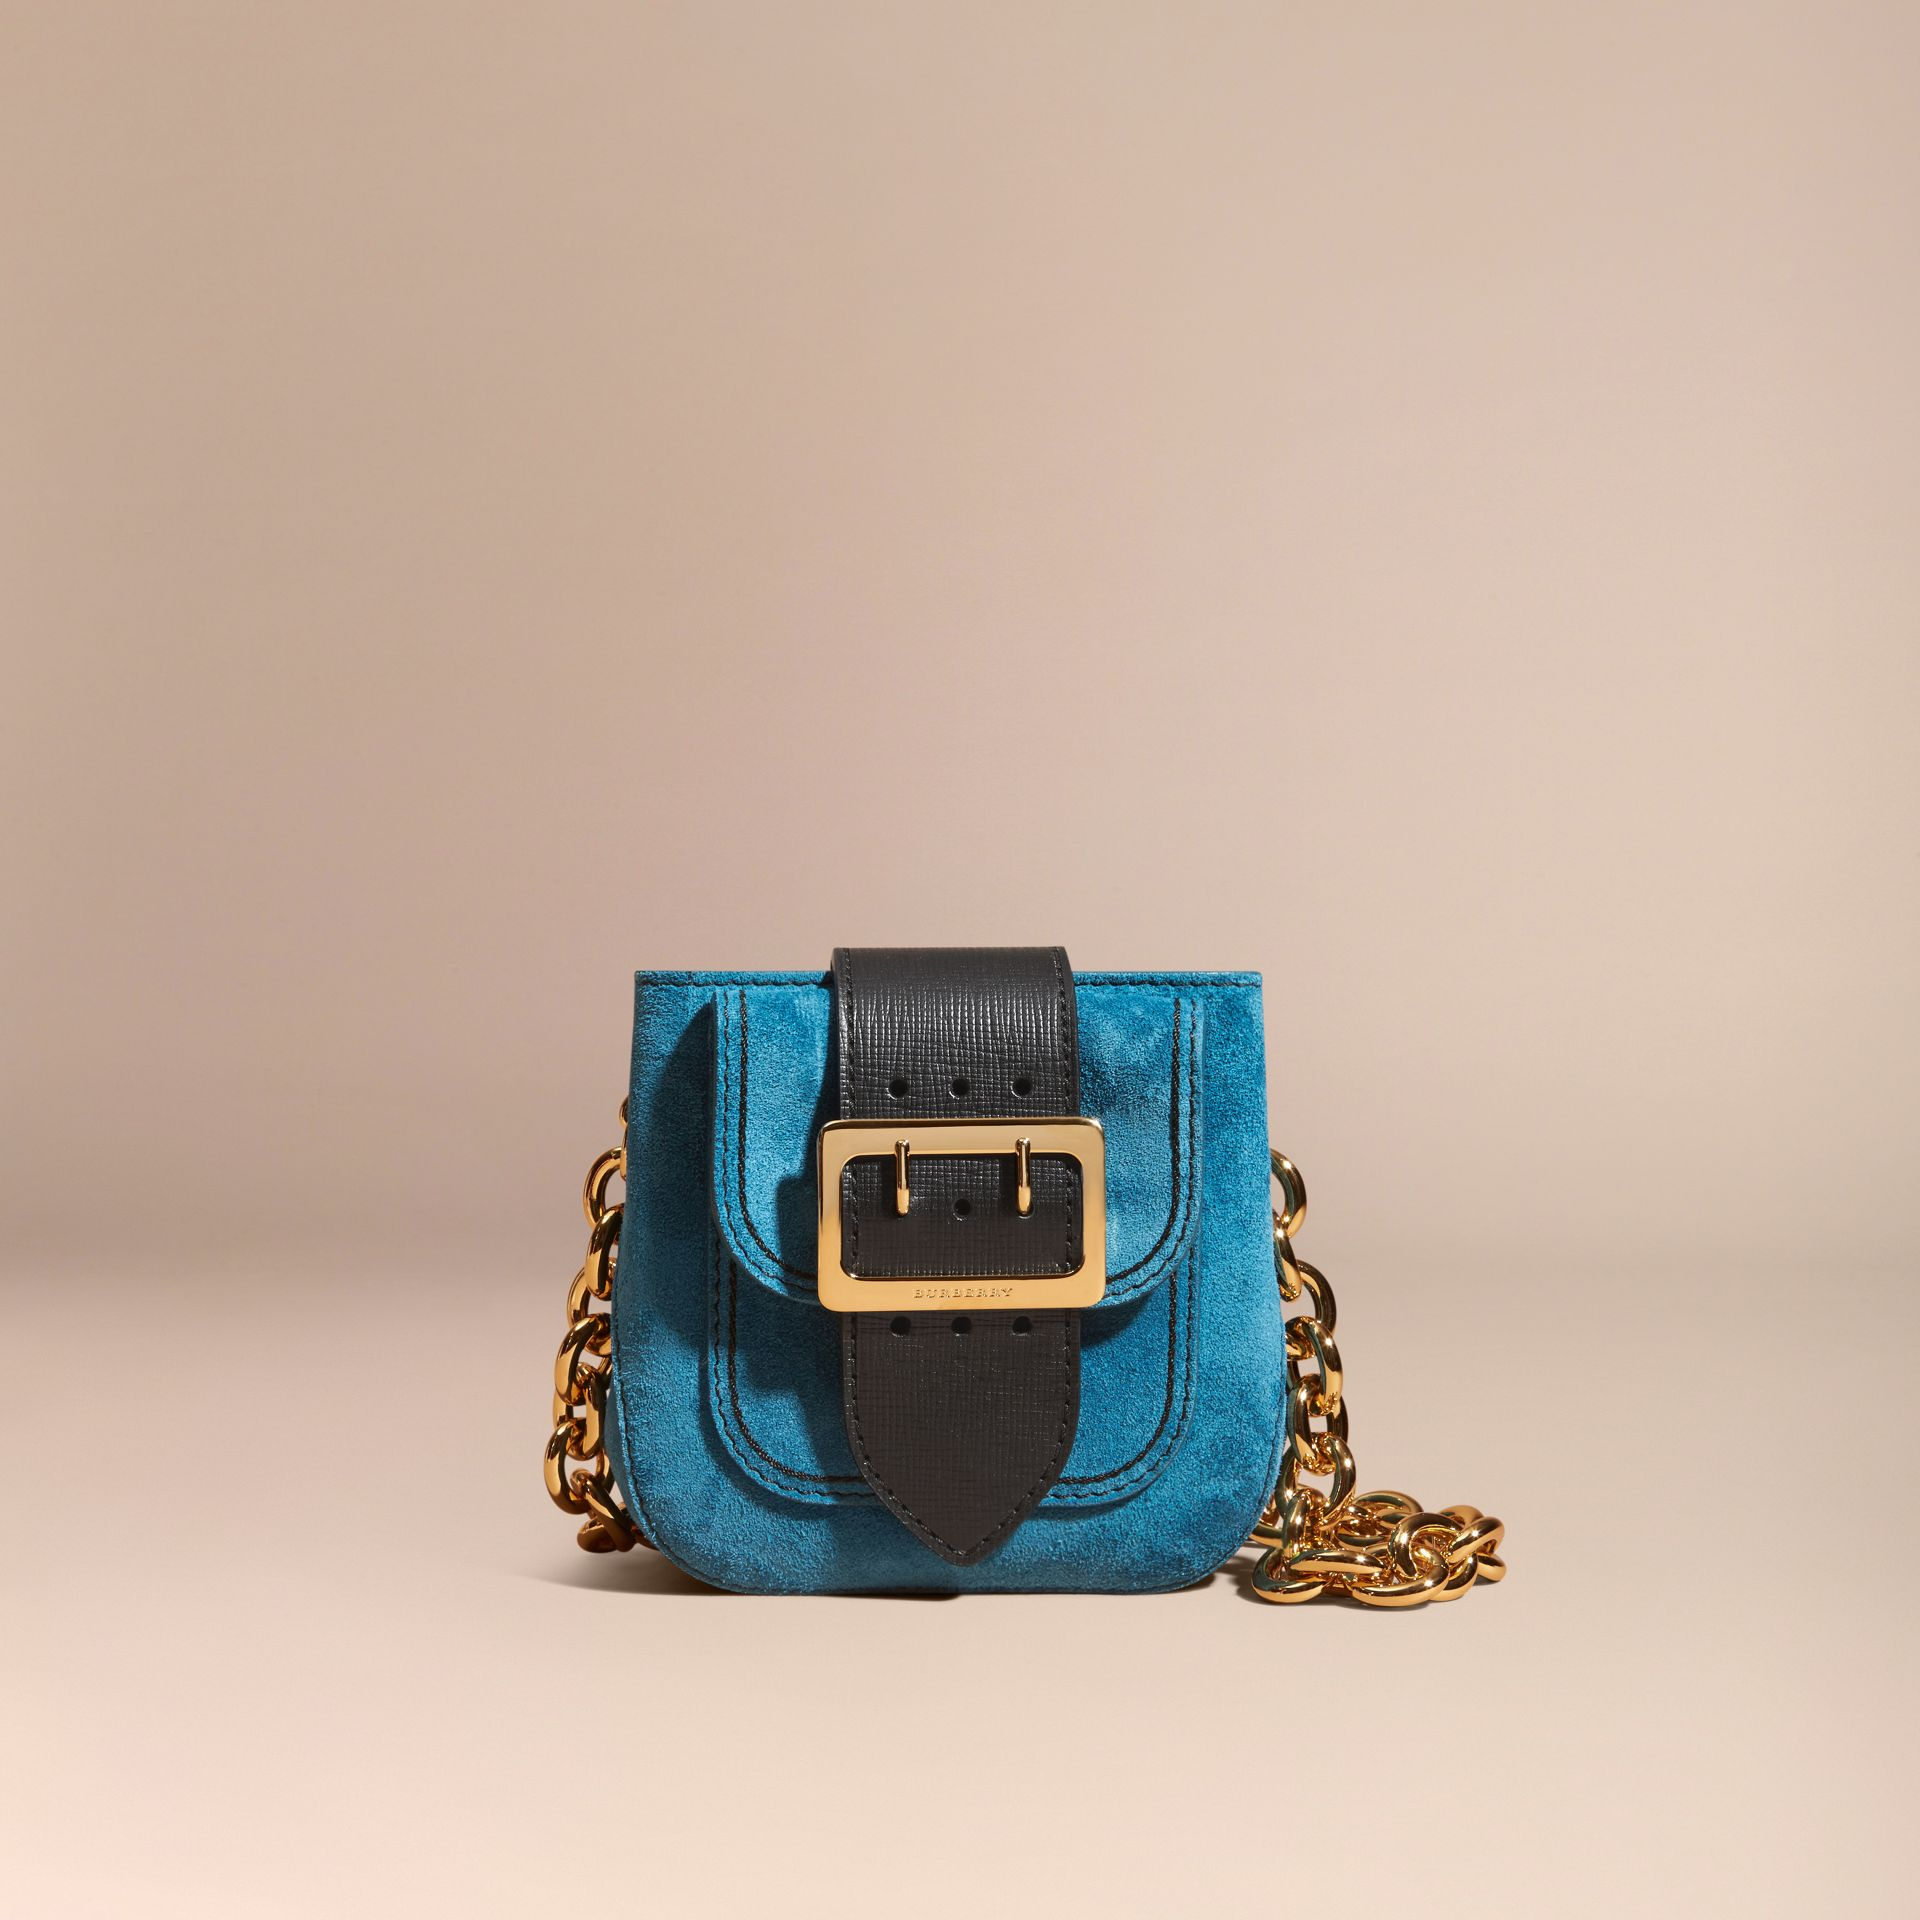 Peacock blue The Small Square Buckle Bag in Suede and Leather Peacock Blue - gallery image 9